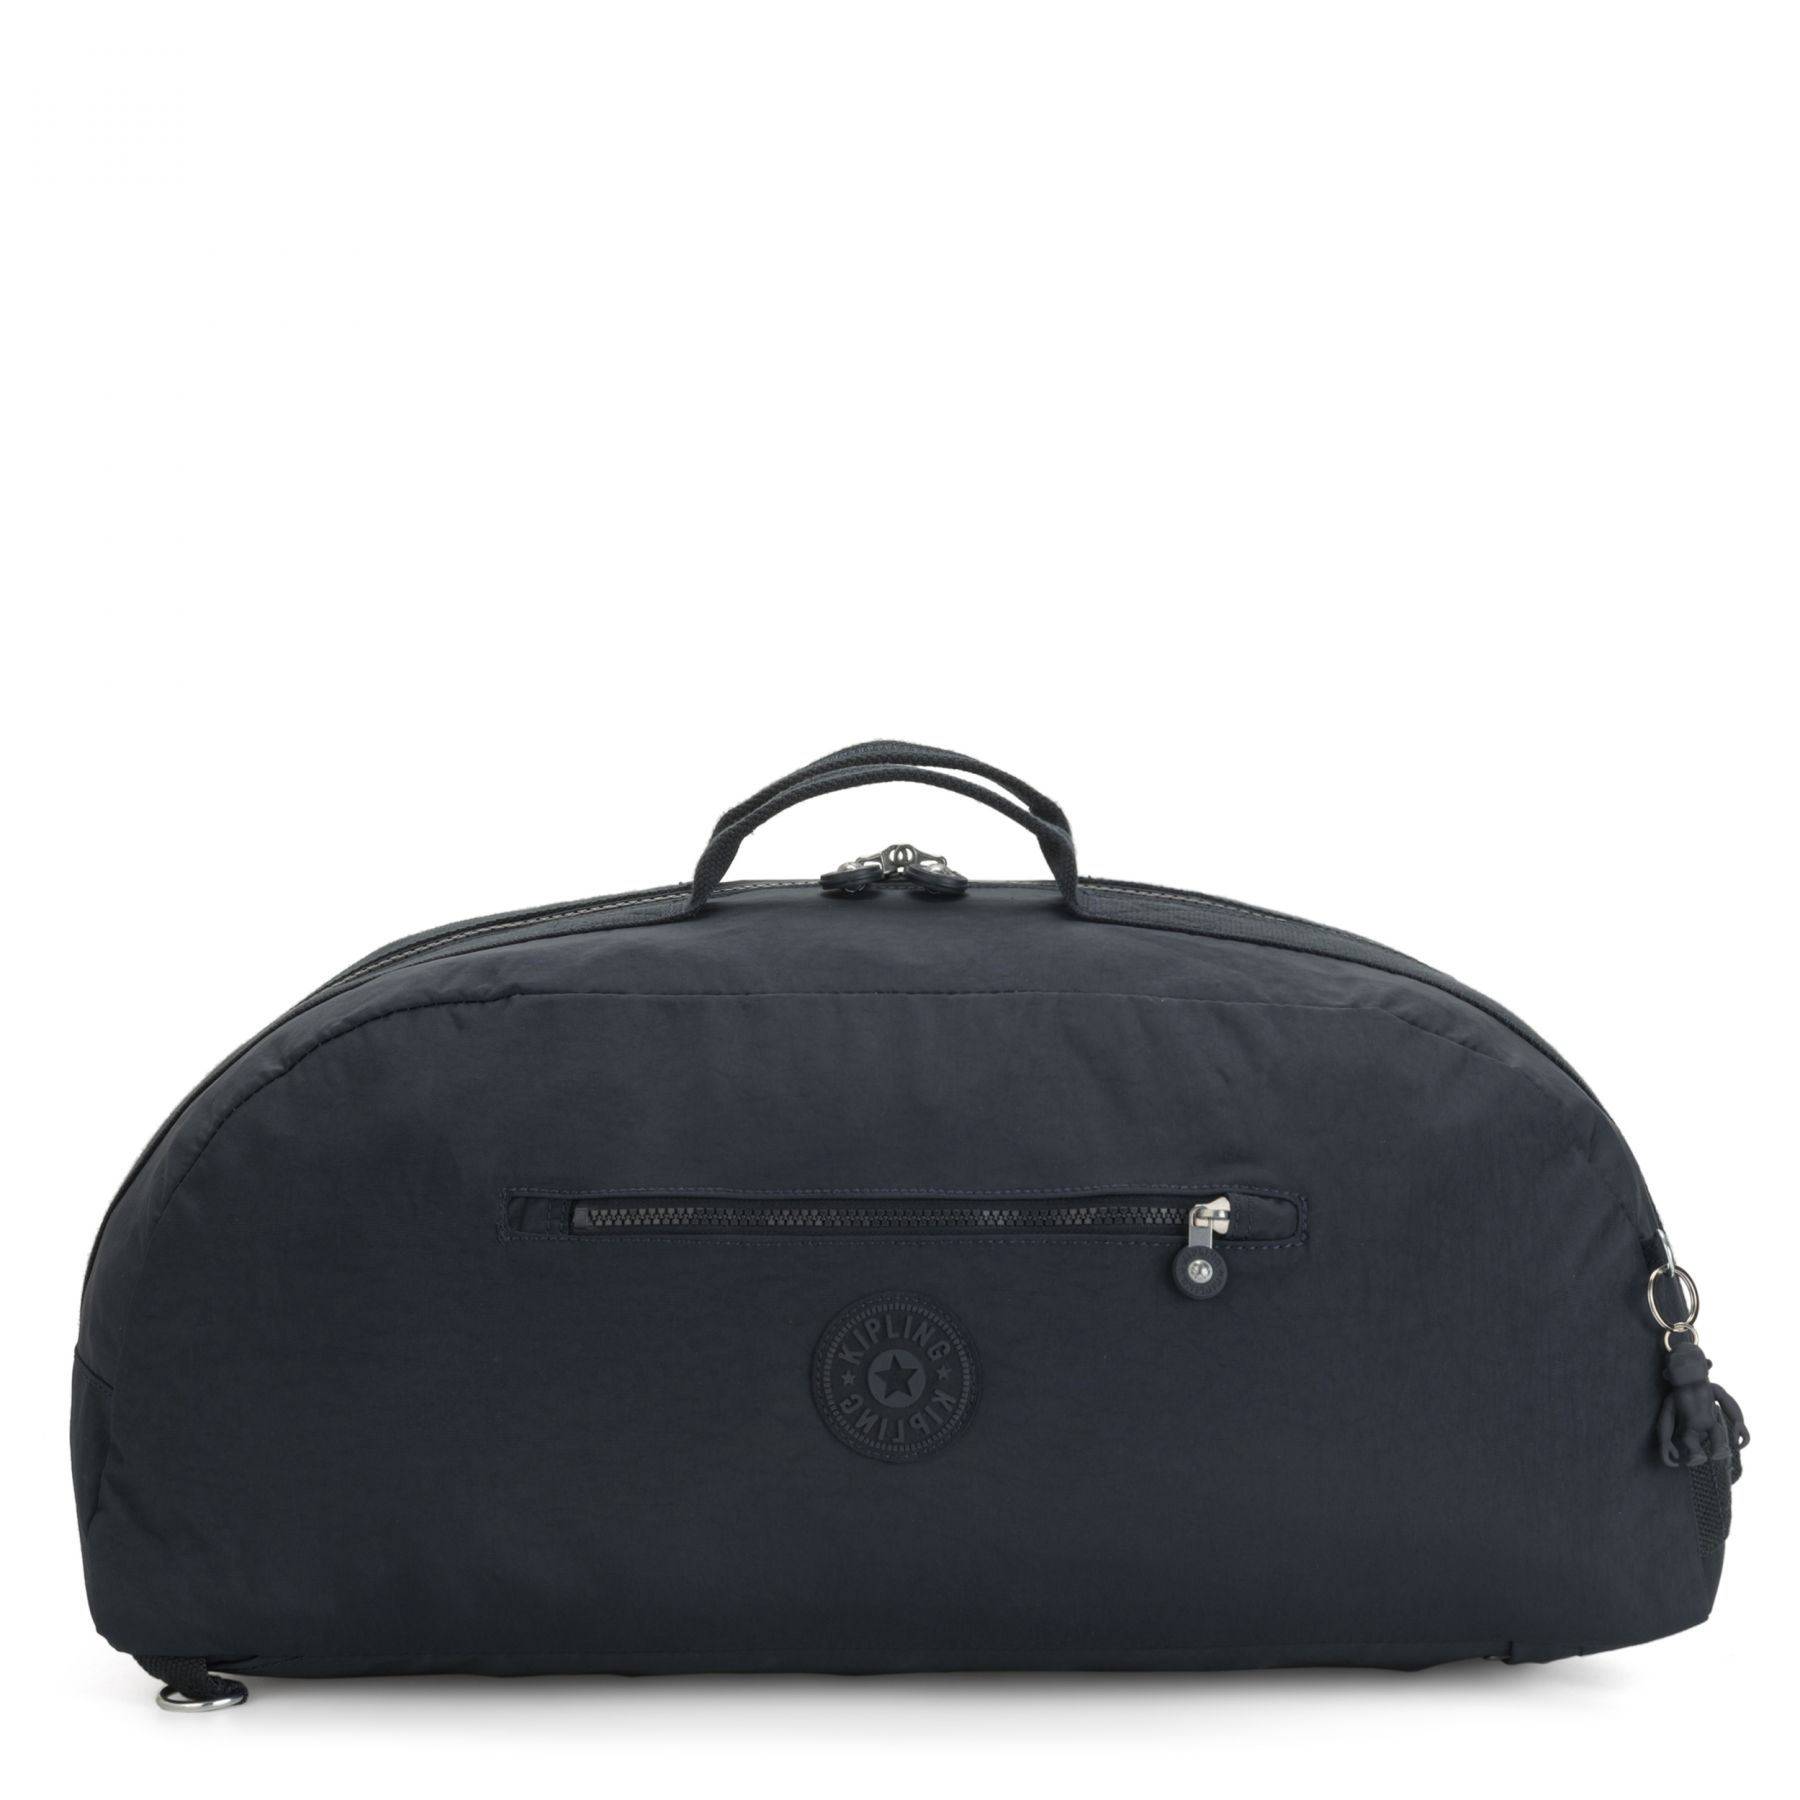 DEVIN Latest Luggage by Kipling - Front view